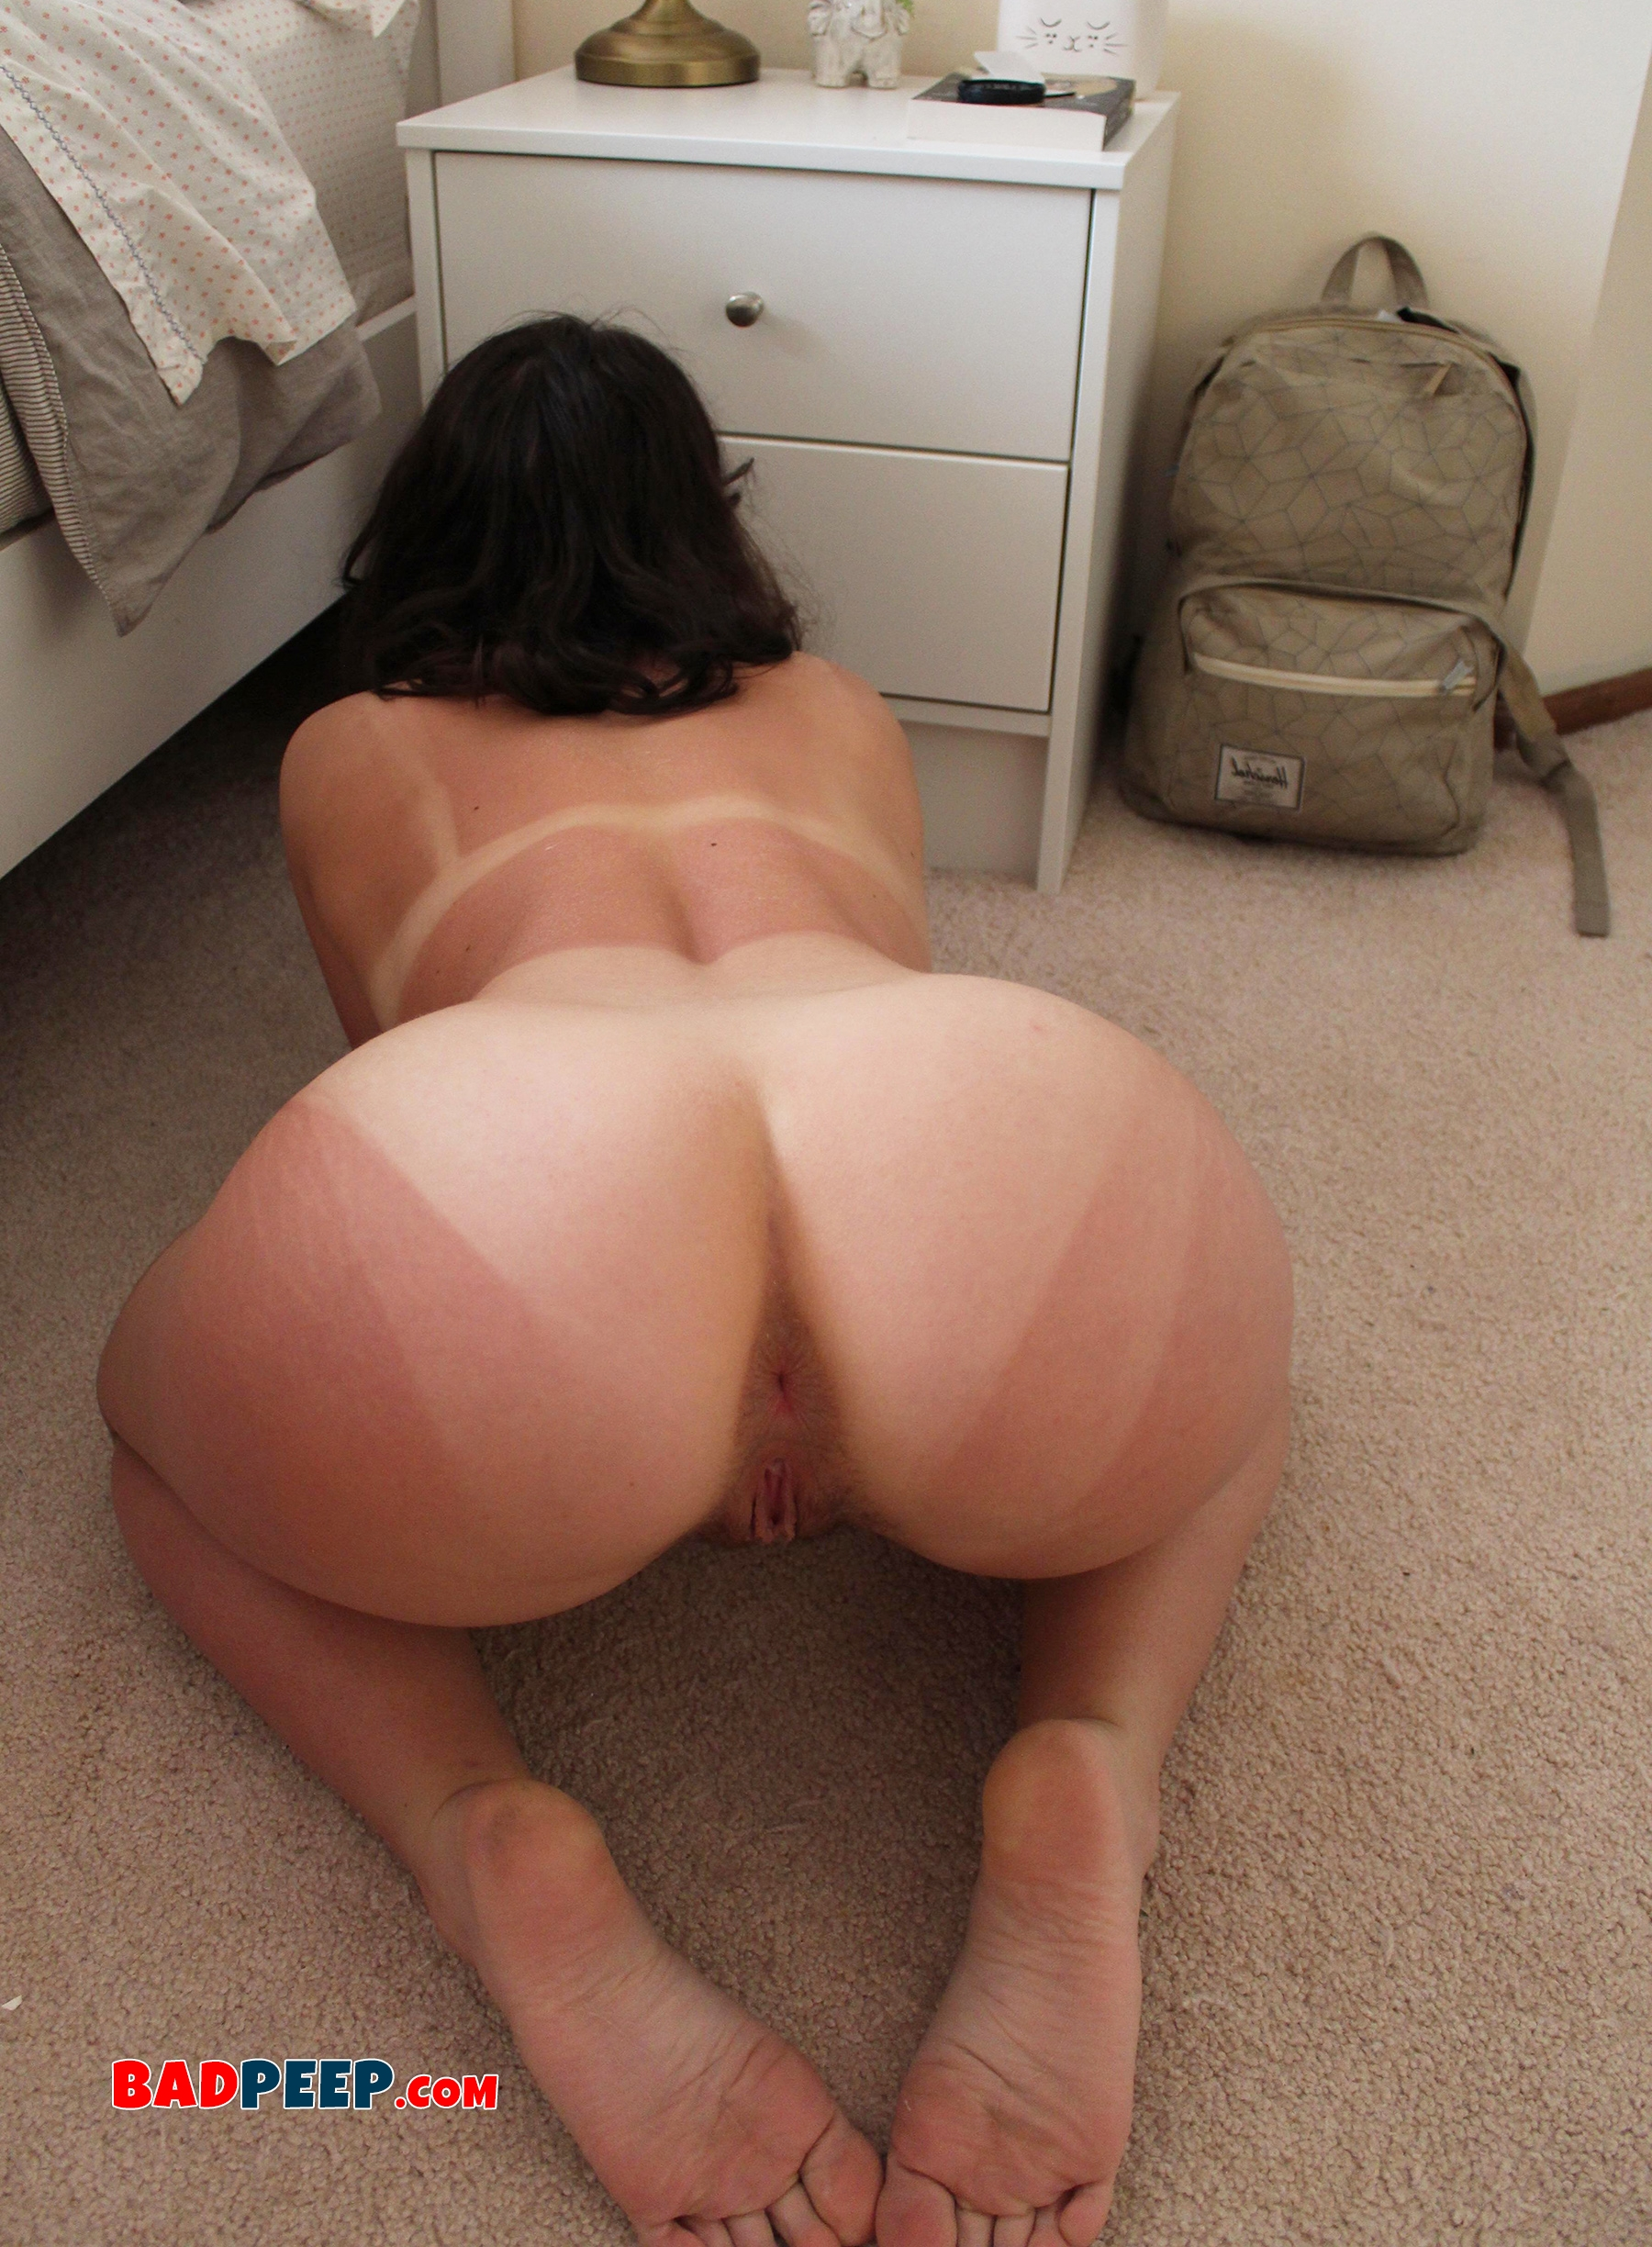 Naked girls show ass My New Girl Shows Difference Between Regular And Anal Doggy Style Pose Bad Peep